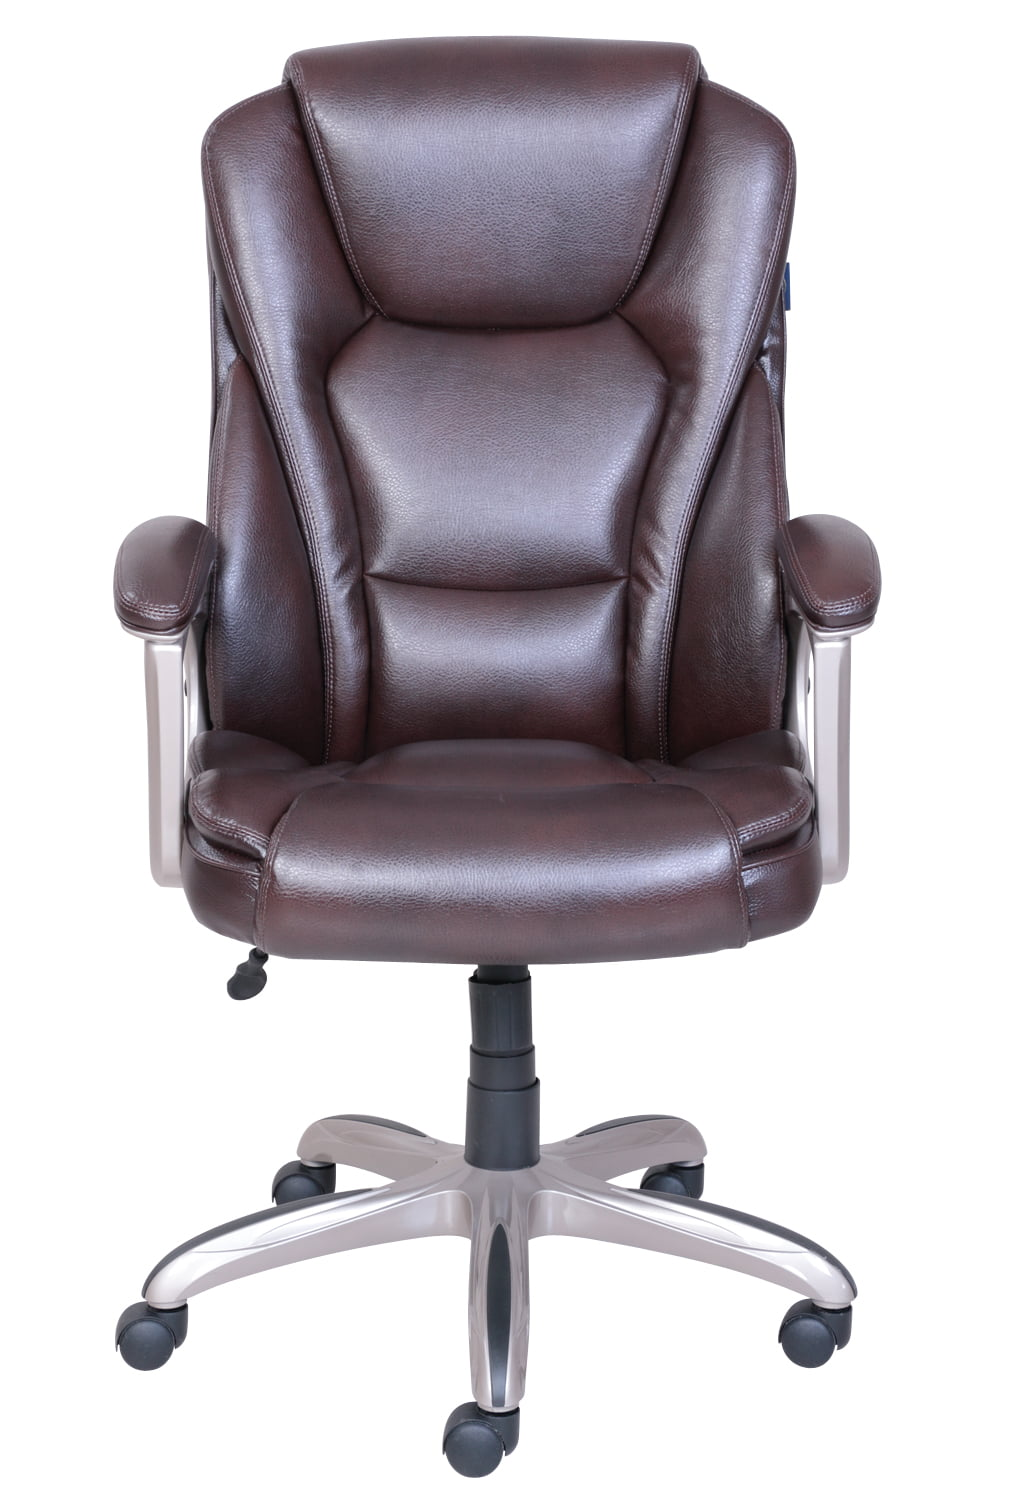 Office Desk Chair Leather Executive Computer High Back Ergonomic